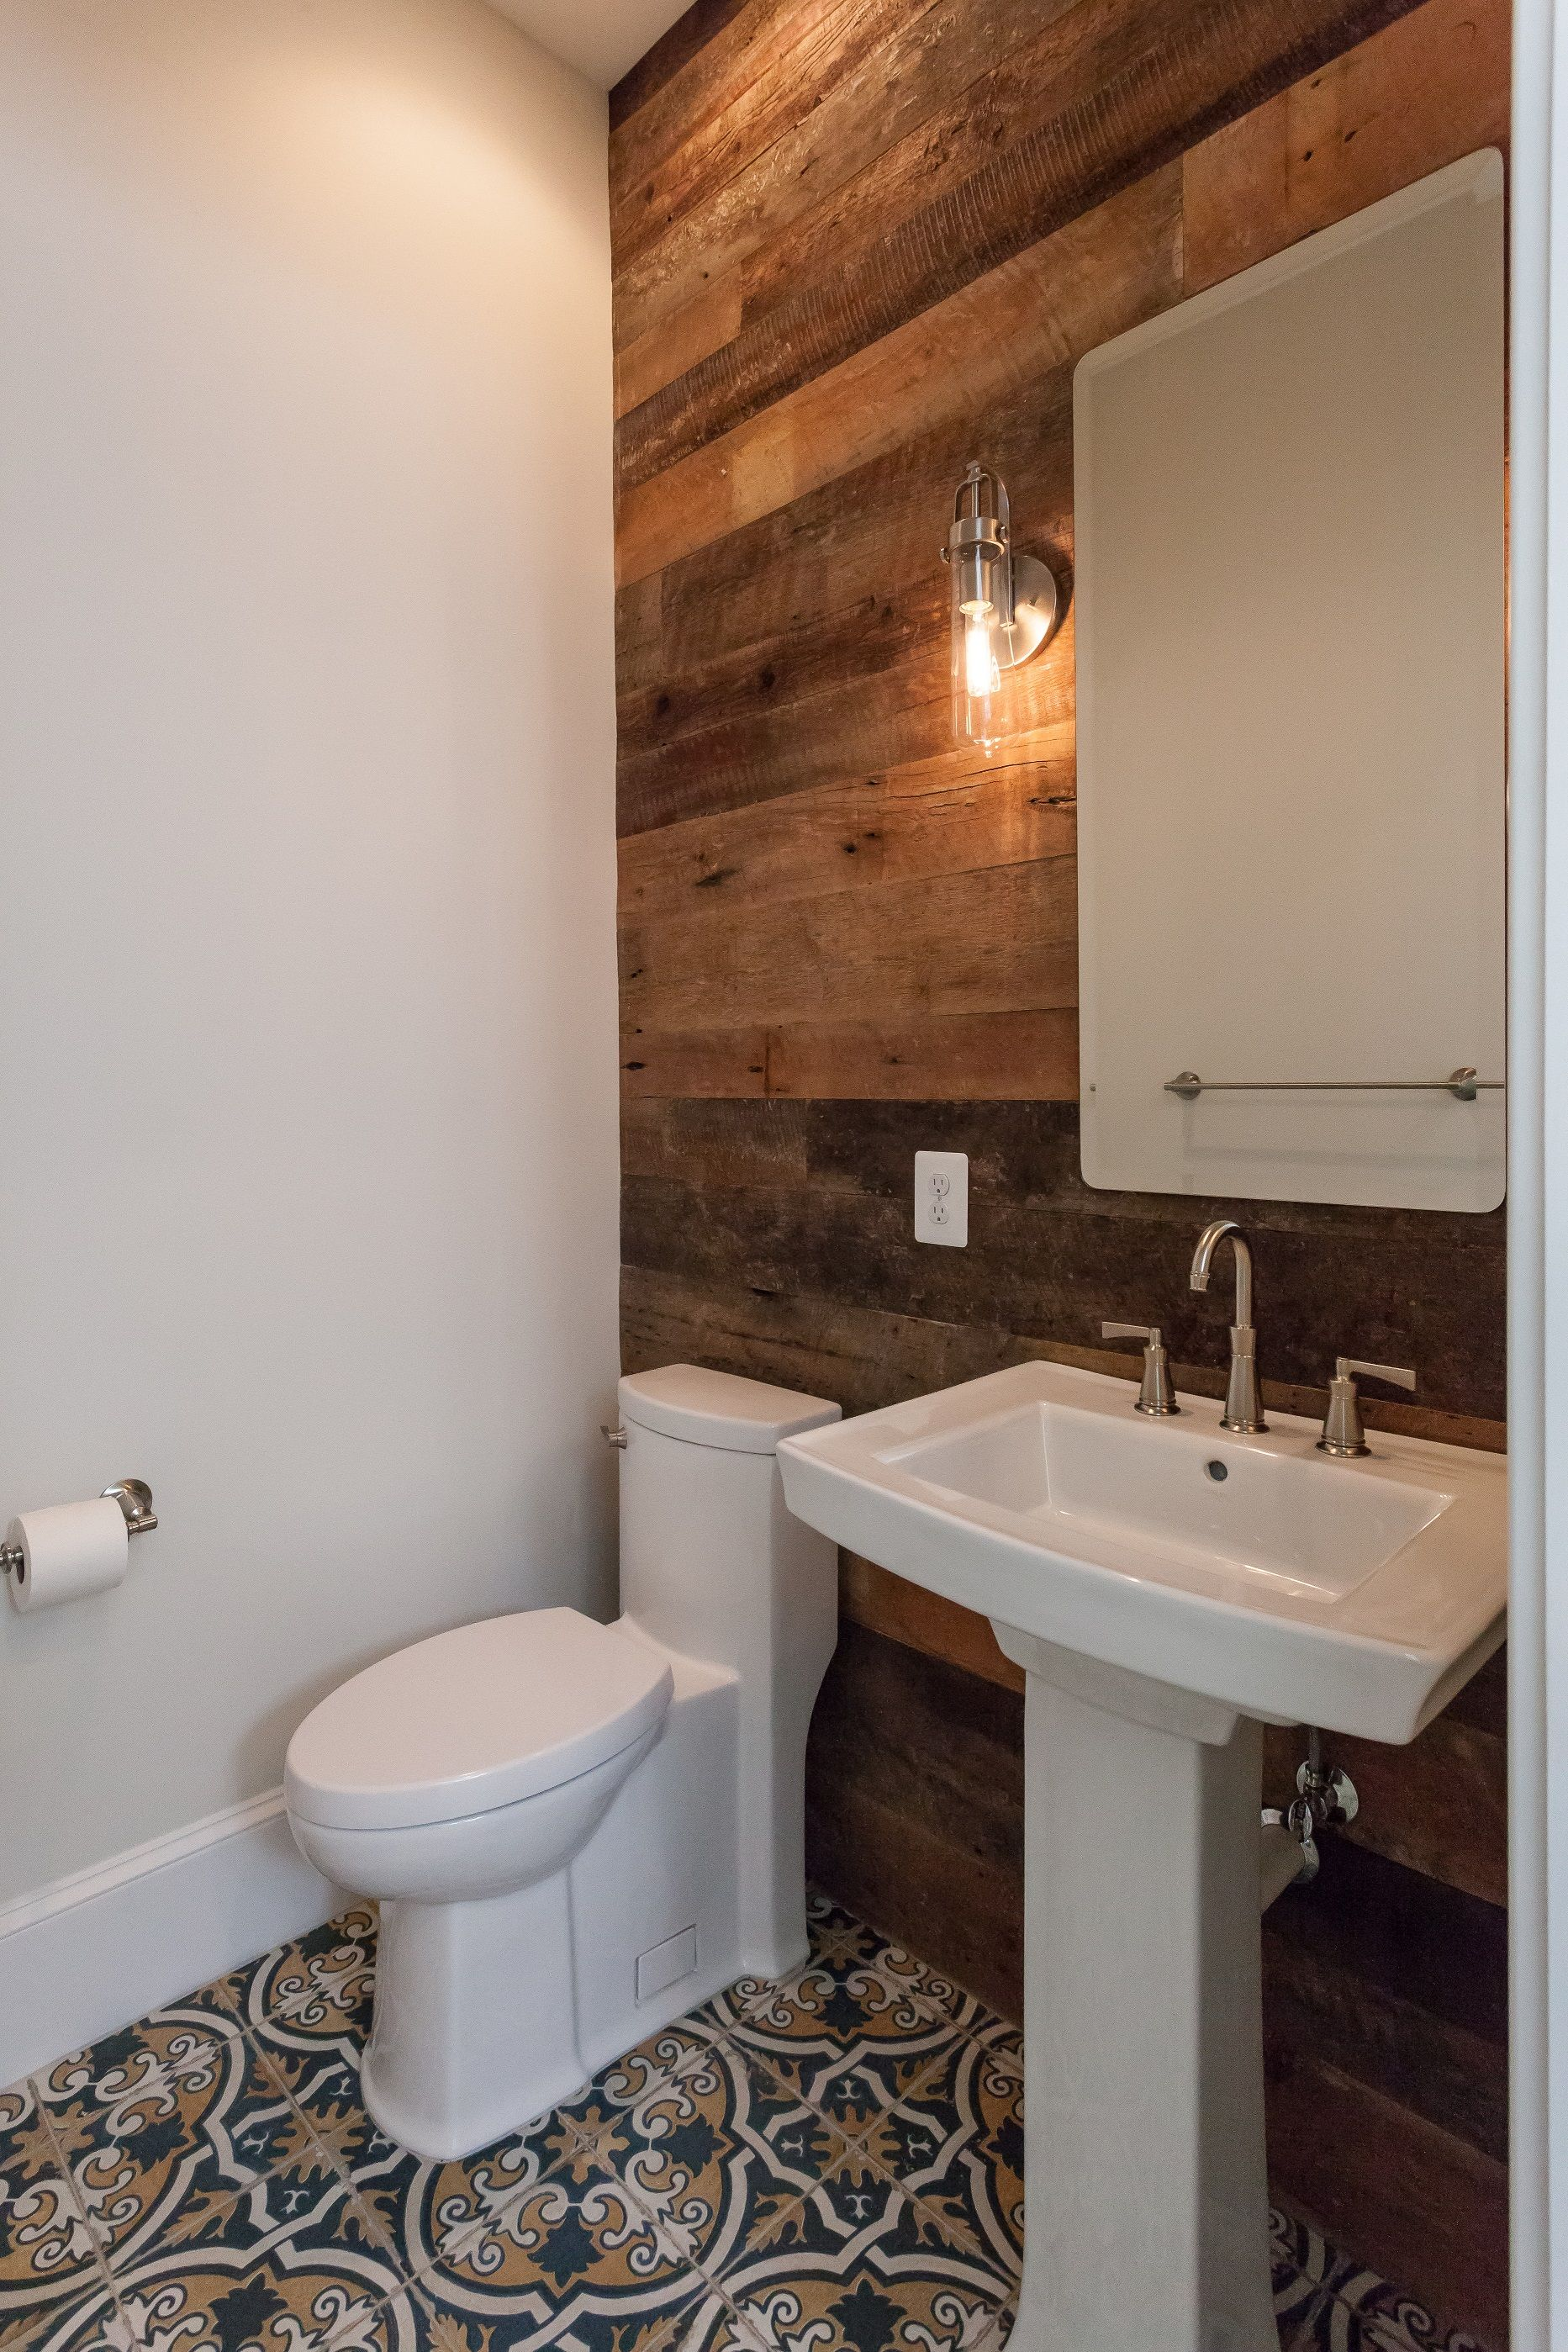 Powder Room With Reclaimed Wood Accent Wall And Blue And Yellow Mosaic Floor Tile In Custom Contemporary Home Wood Wall Tiles Wood Accent Wall Tile Accent Wall